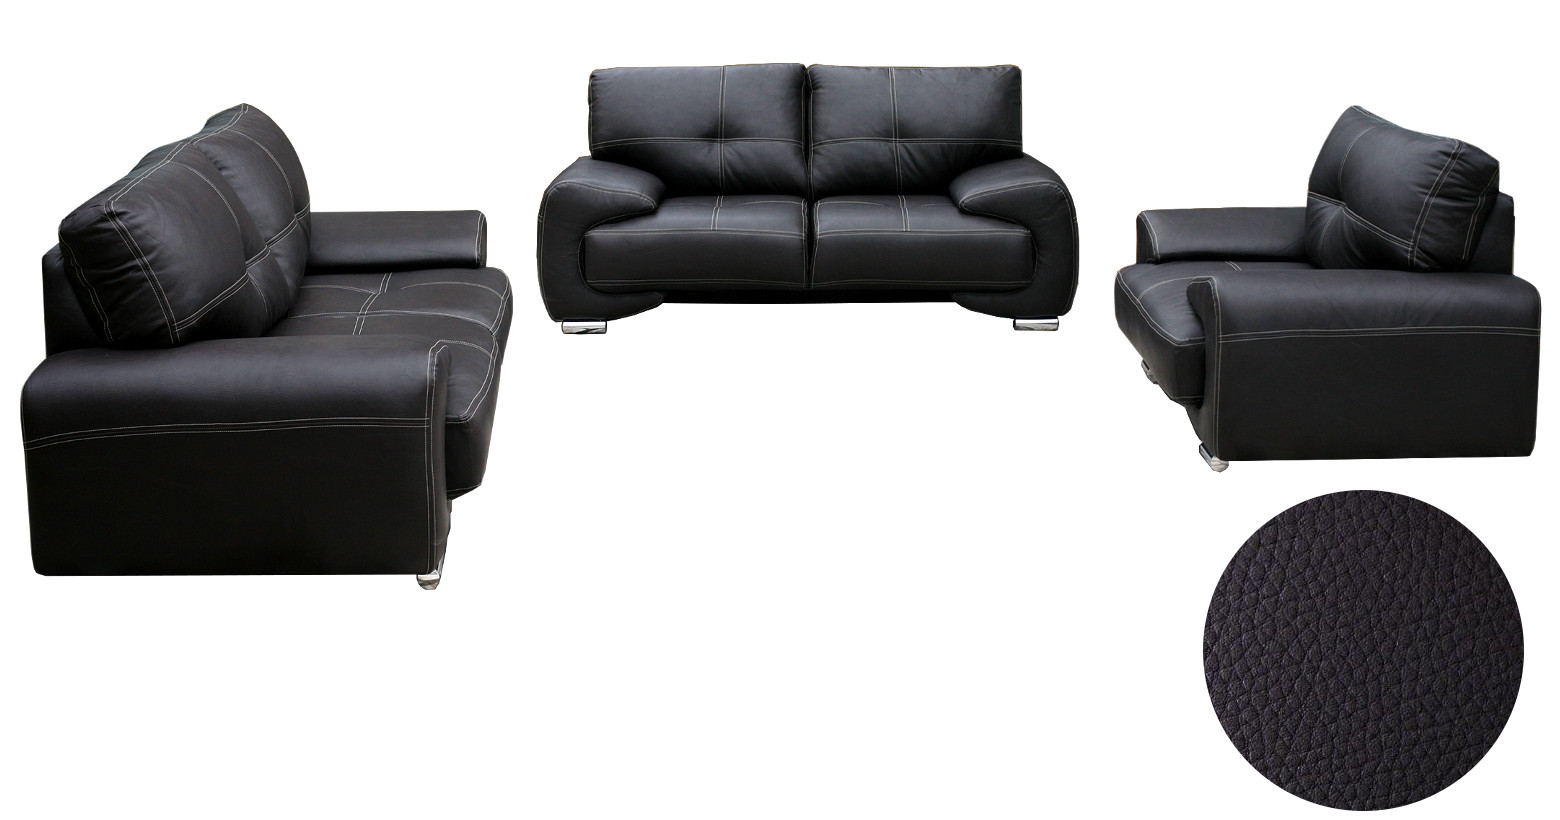 wohnlandschaft sofa set couch 3er 2er sessel 3 2 1. Black Bedroom Furniture Sets. Home Design Ideas